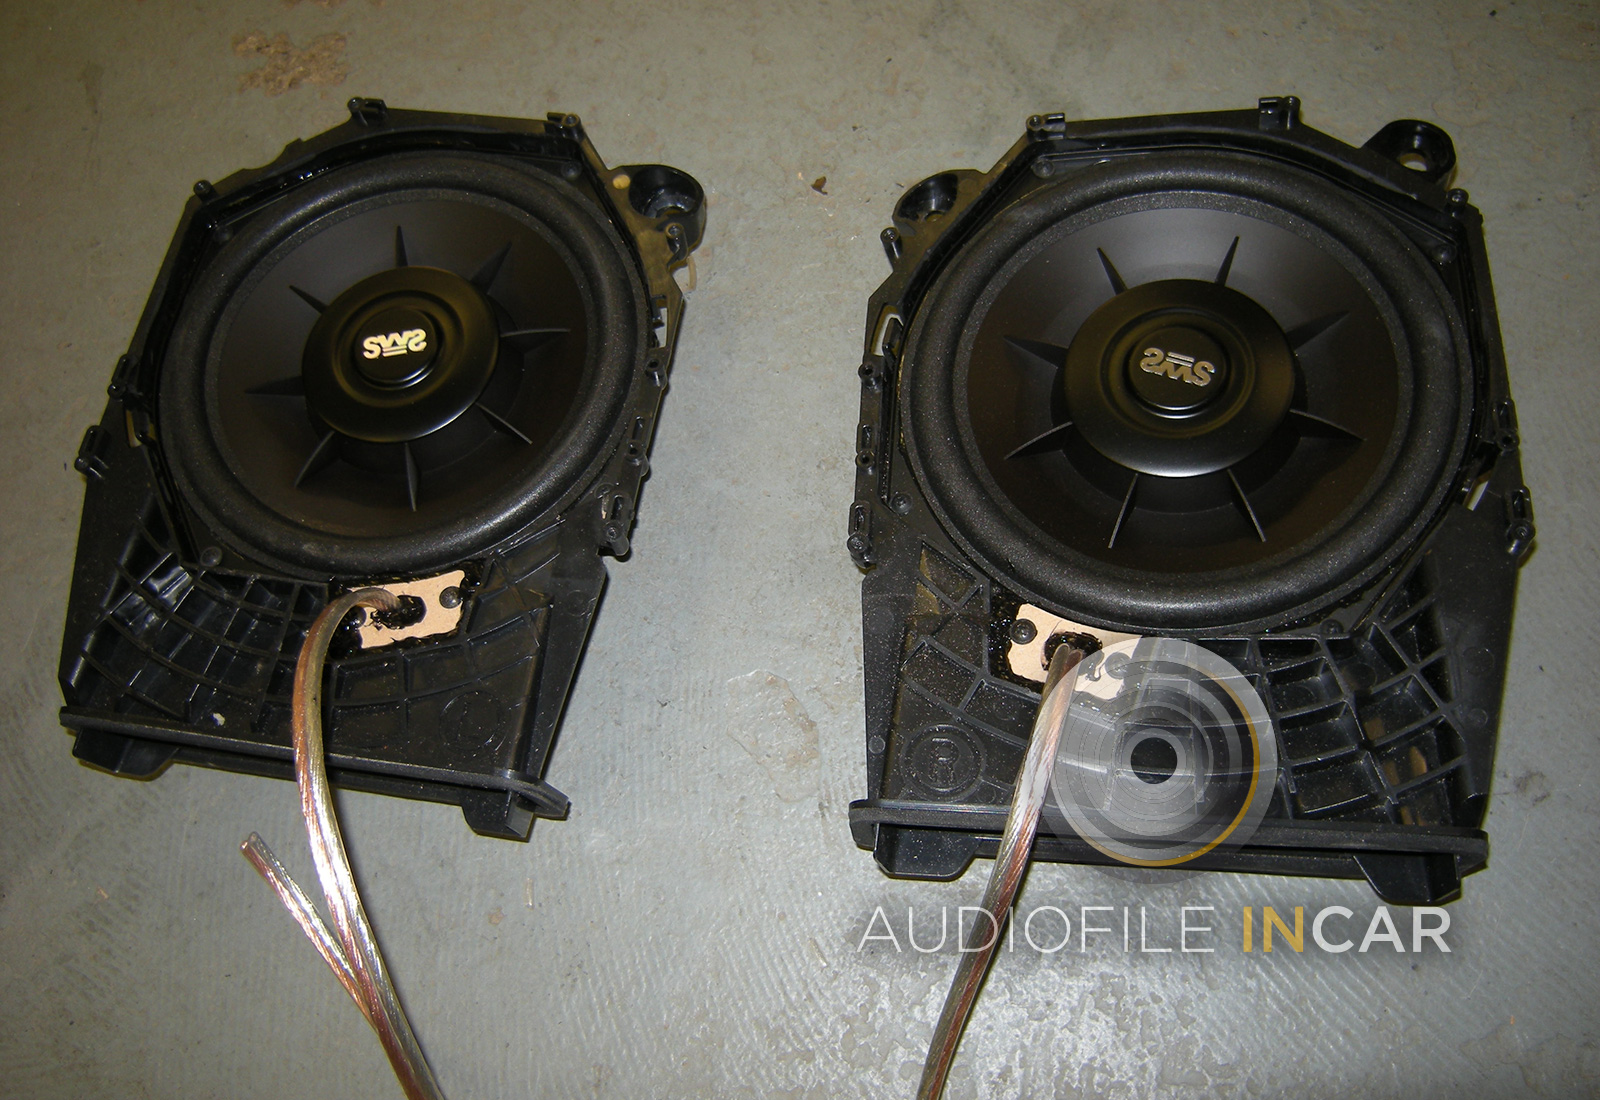 This shows the BMW enclosures removed and modified with the upgraded Earthquake SWS subwoofers fitted